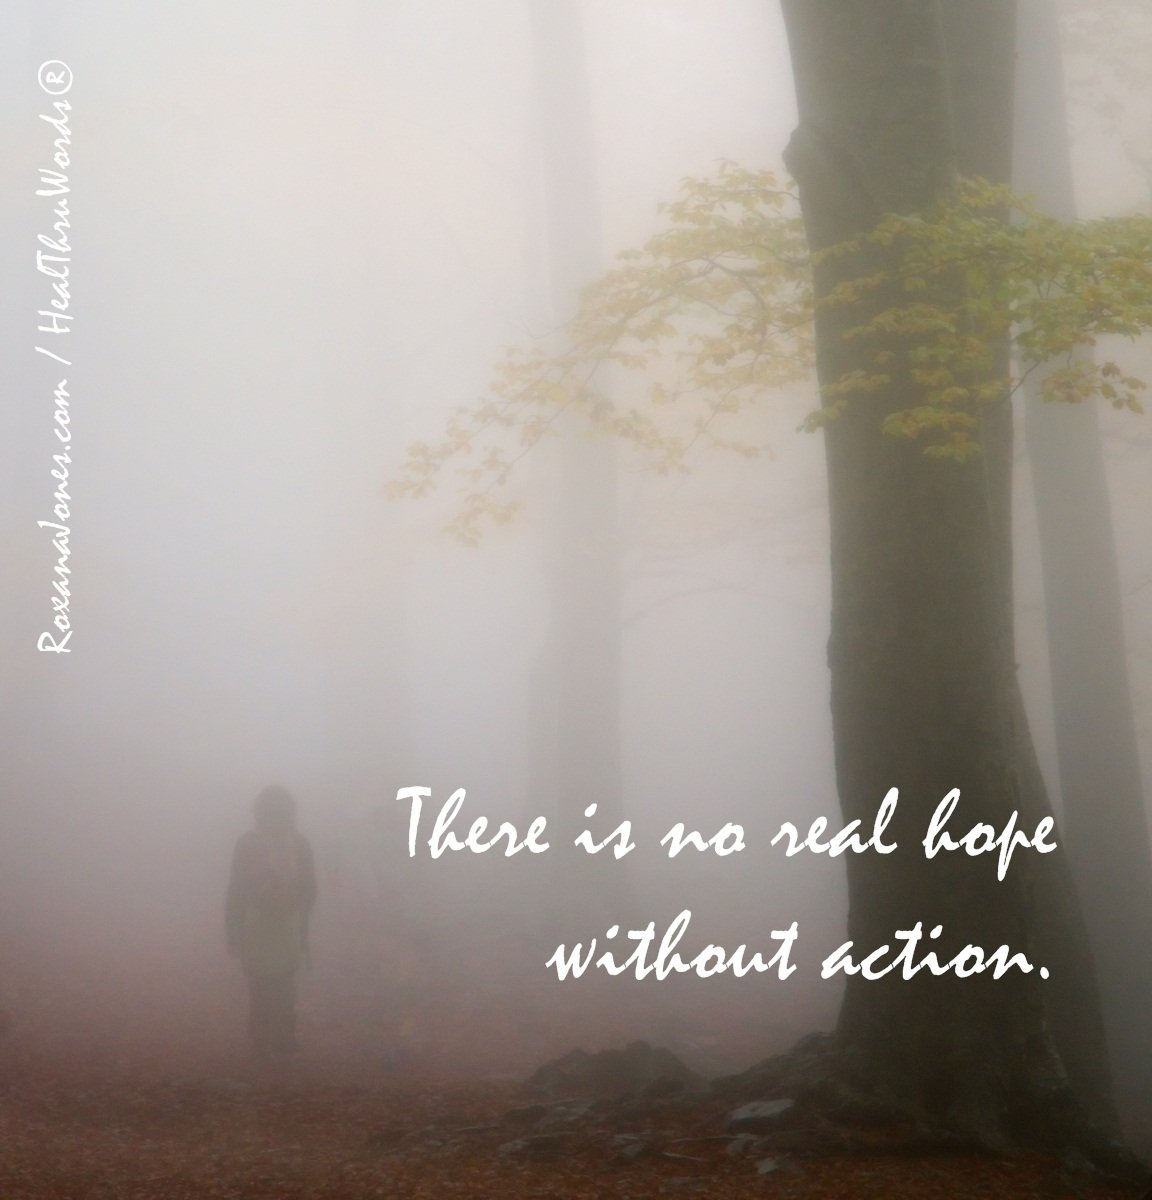 Inspirational Image: Hope and Action